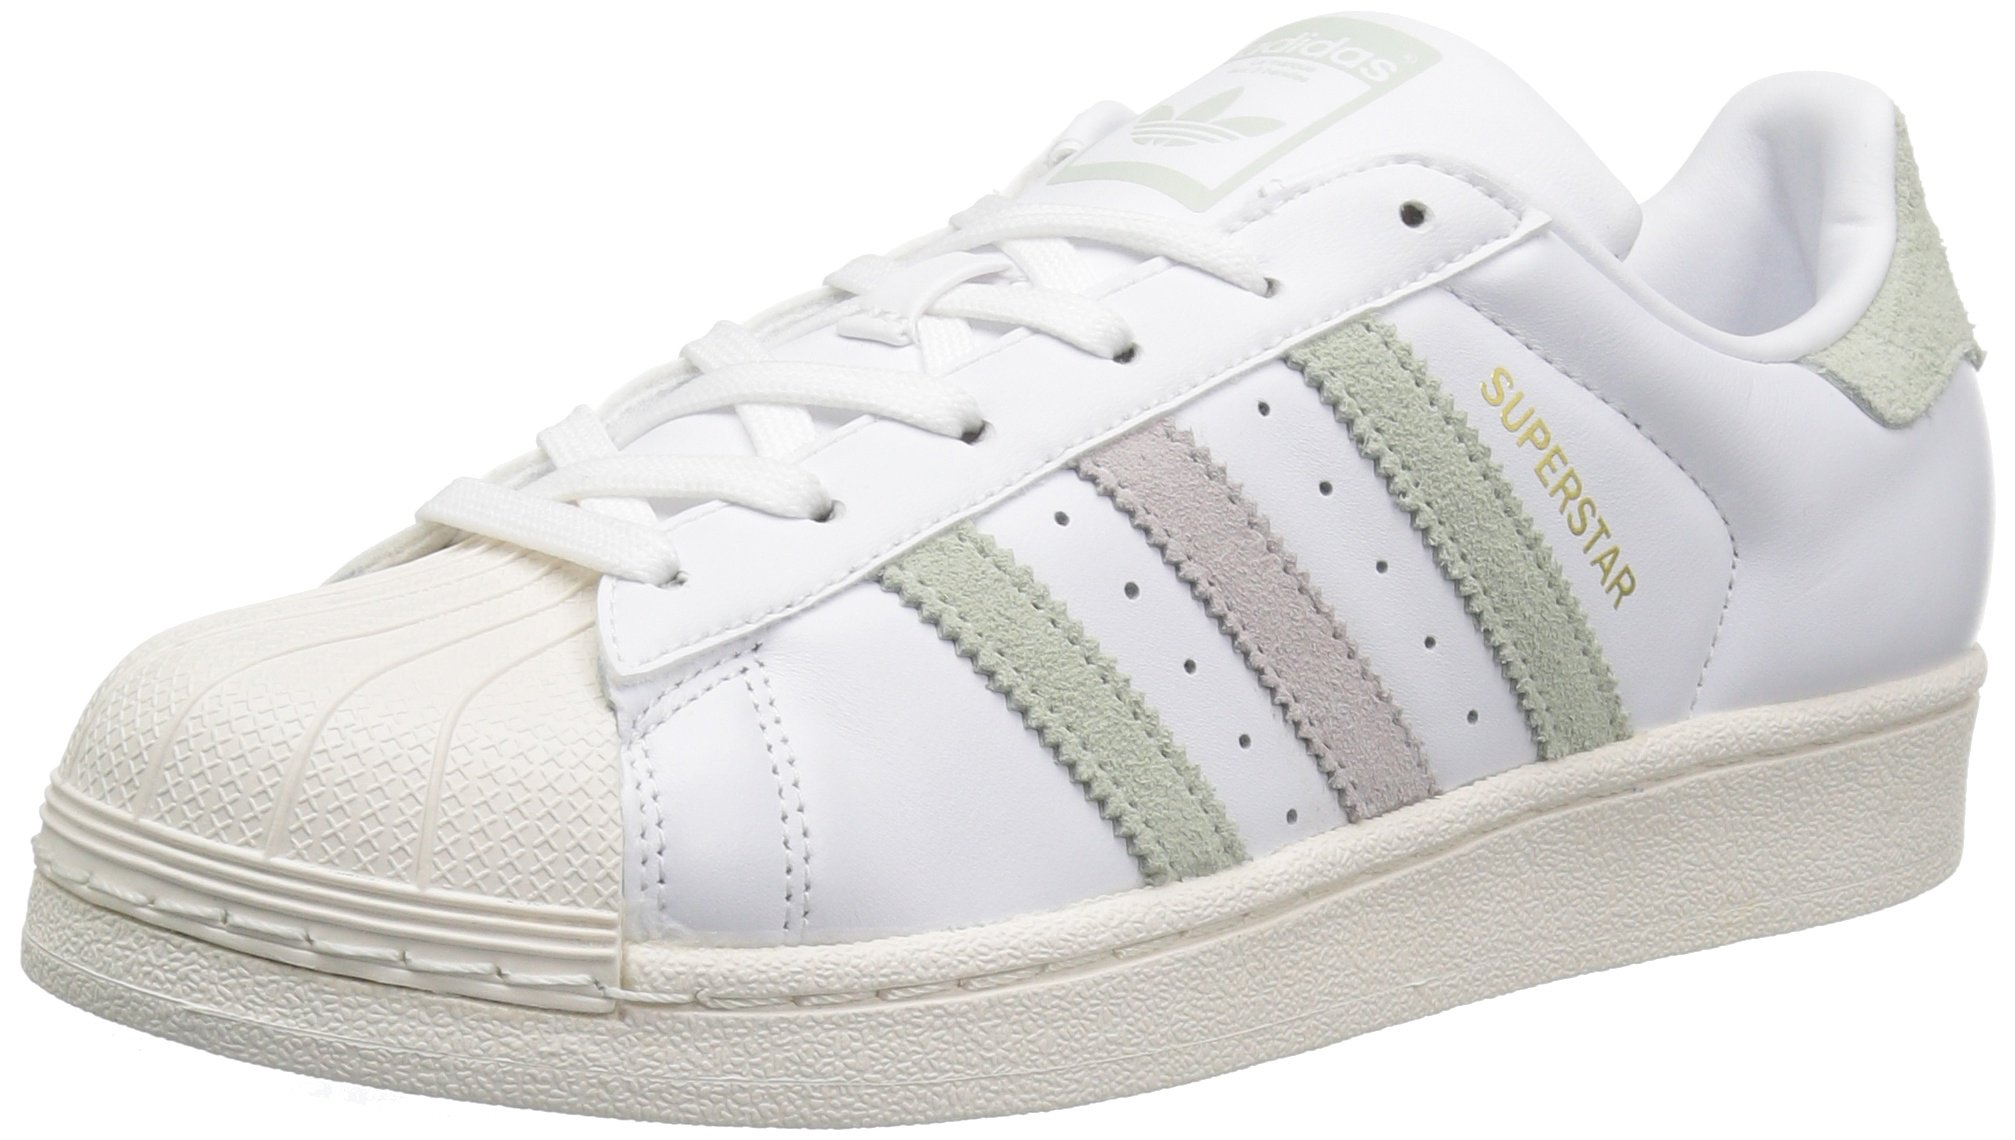 3fb77fc2f8 adidas Originals Women's Superstar Shoes Running, White/Linen Green Ice  Purple Fabric, (9 M US)